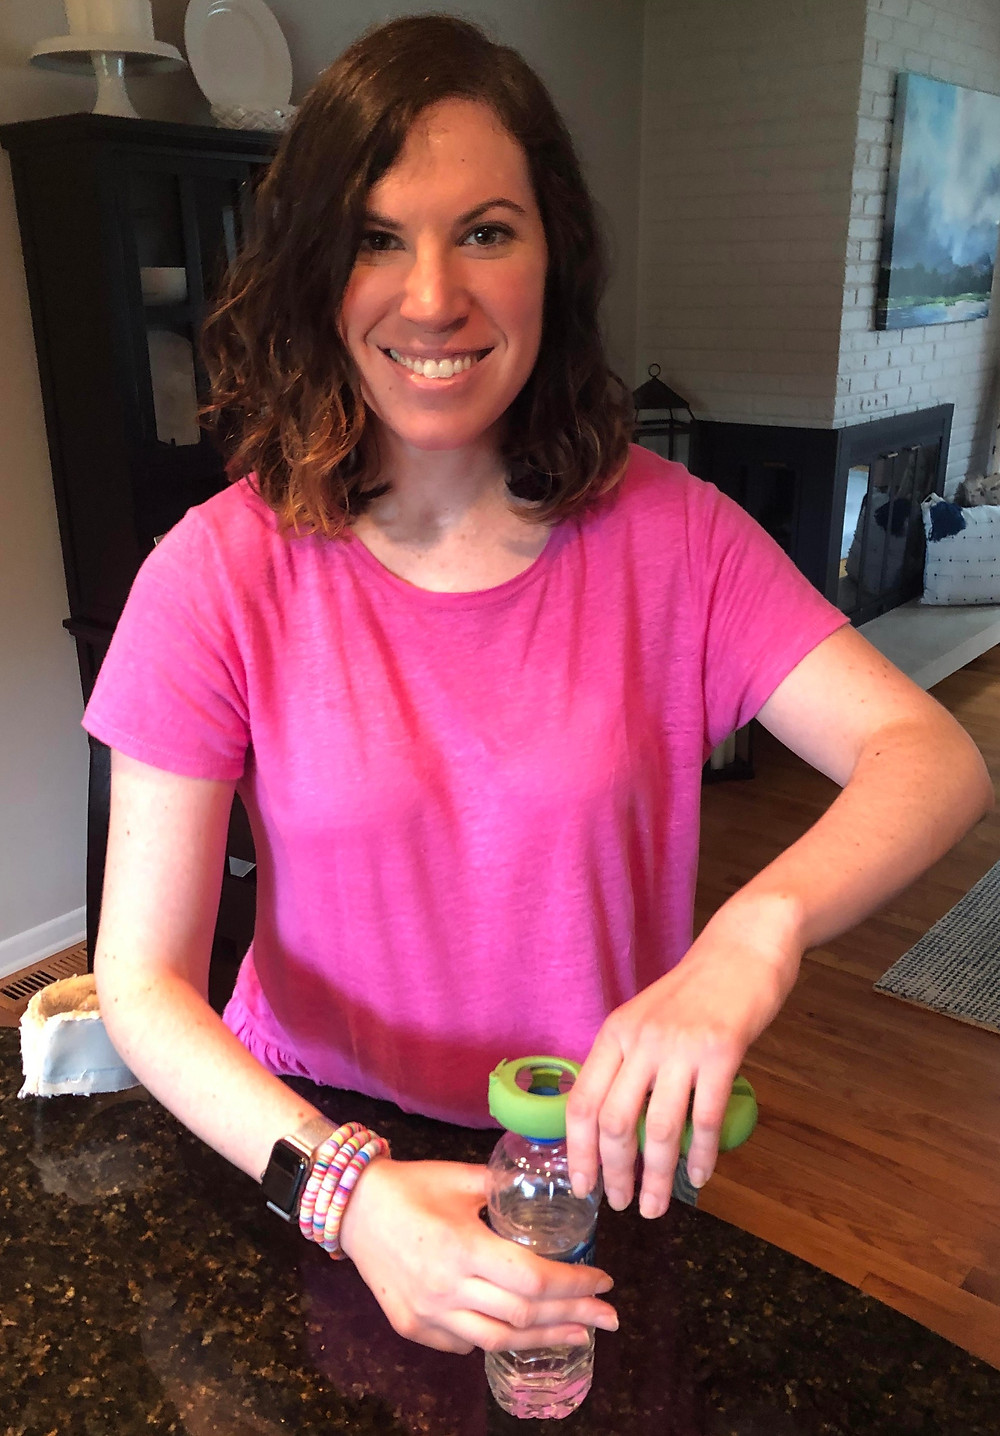 This is another image of Molly using er 6 in 1 bottle opener. She is wearing a pink shirt and looking directly at the camera and smiling. She is using her bottle opener to open up a bottle in her kitchen.